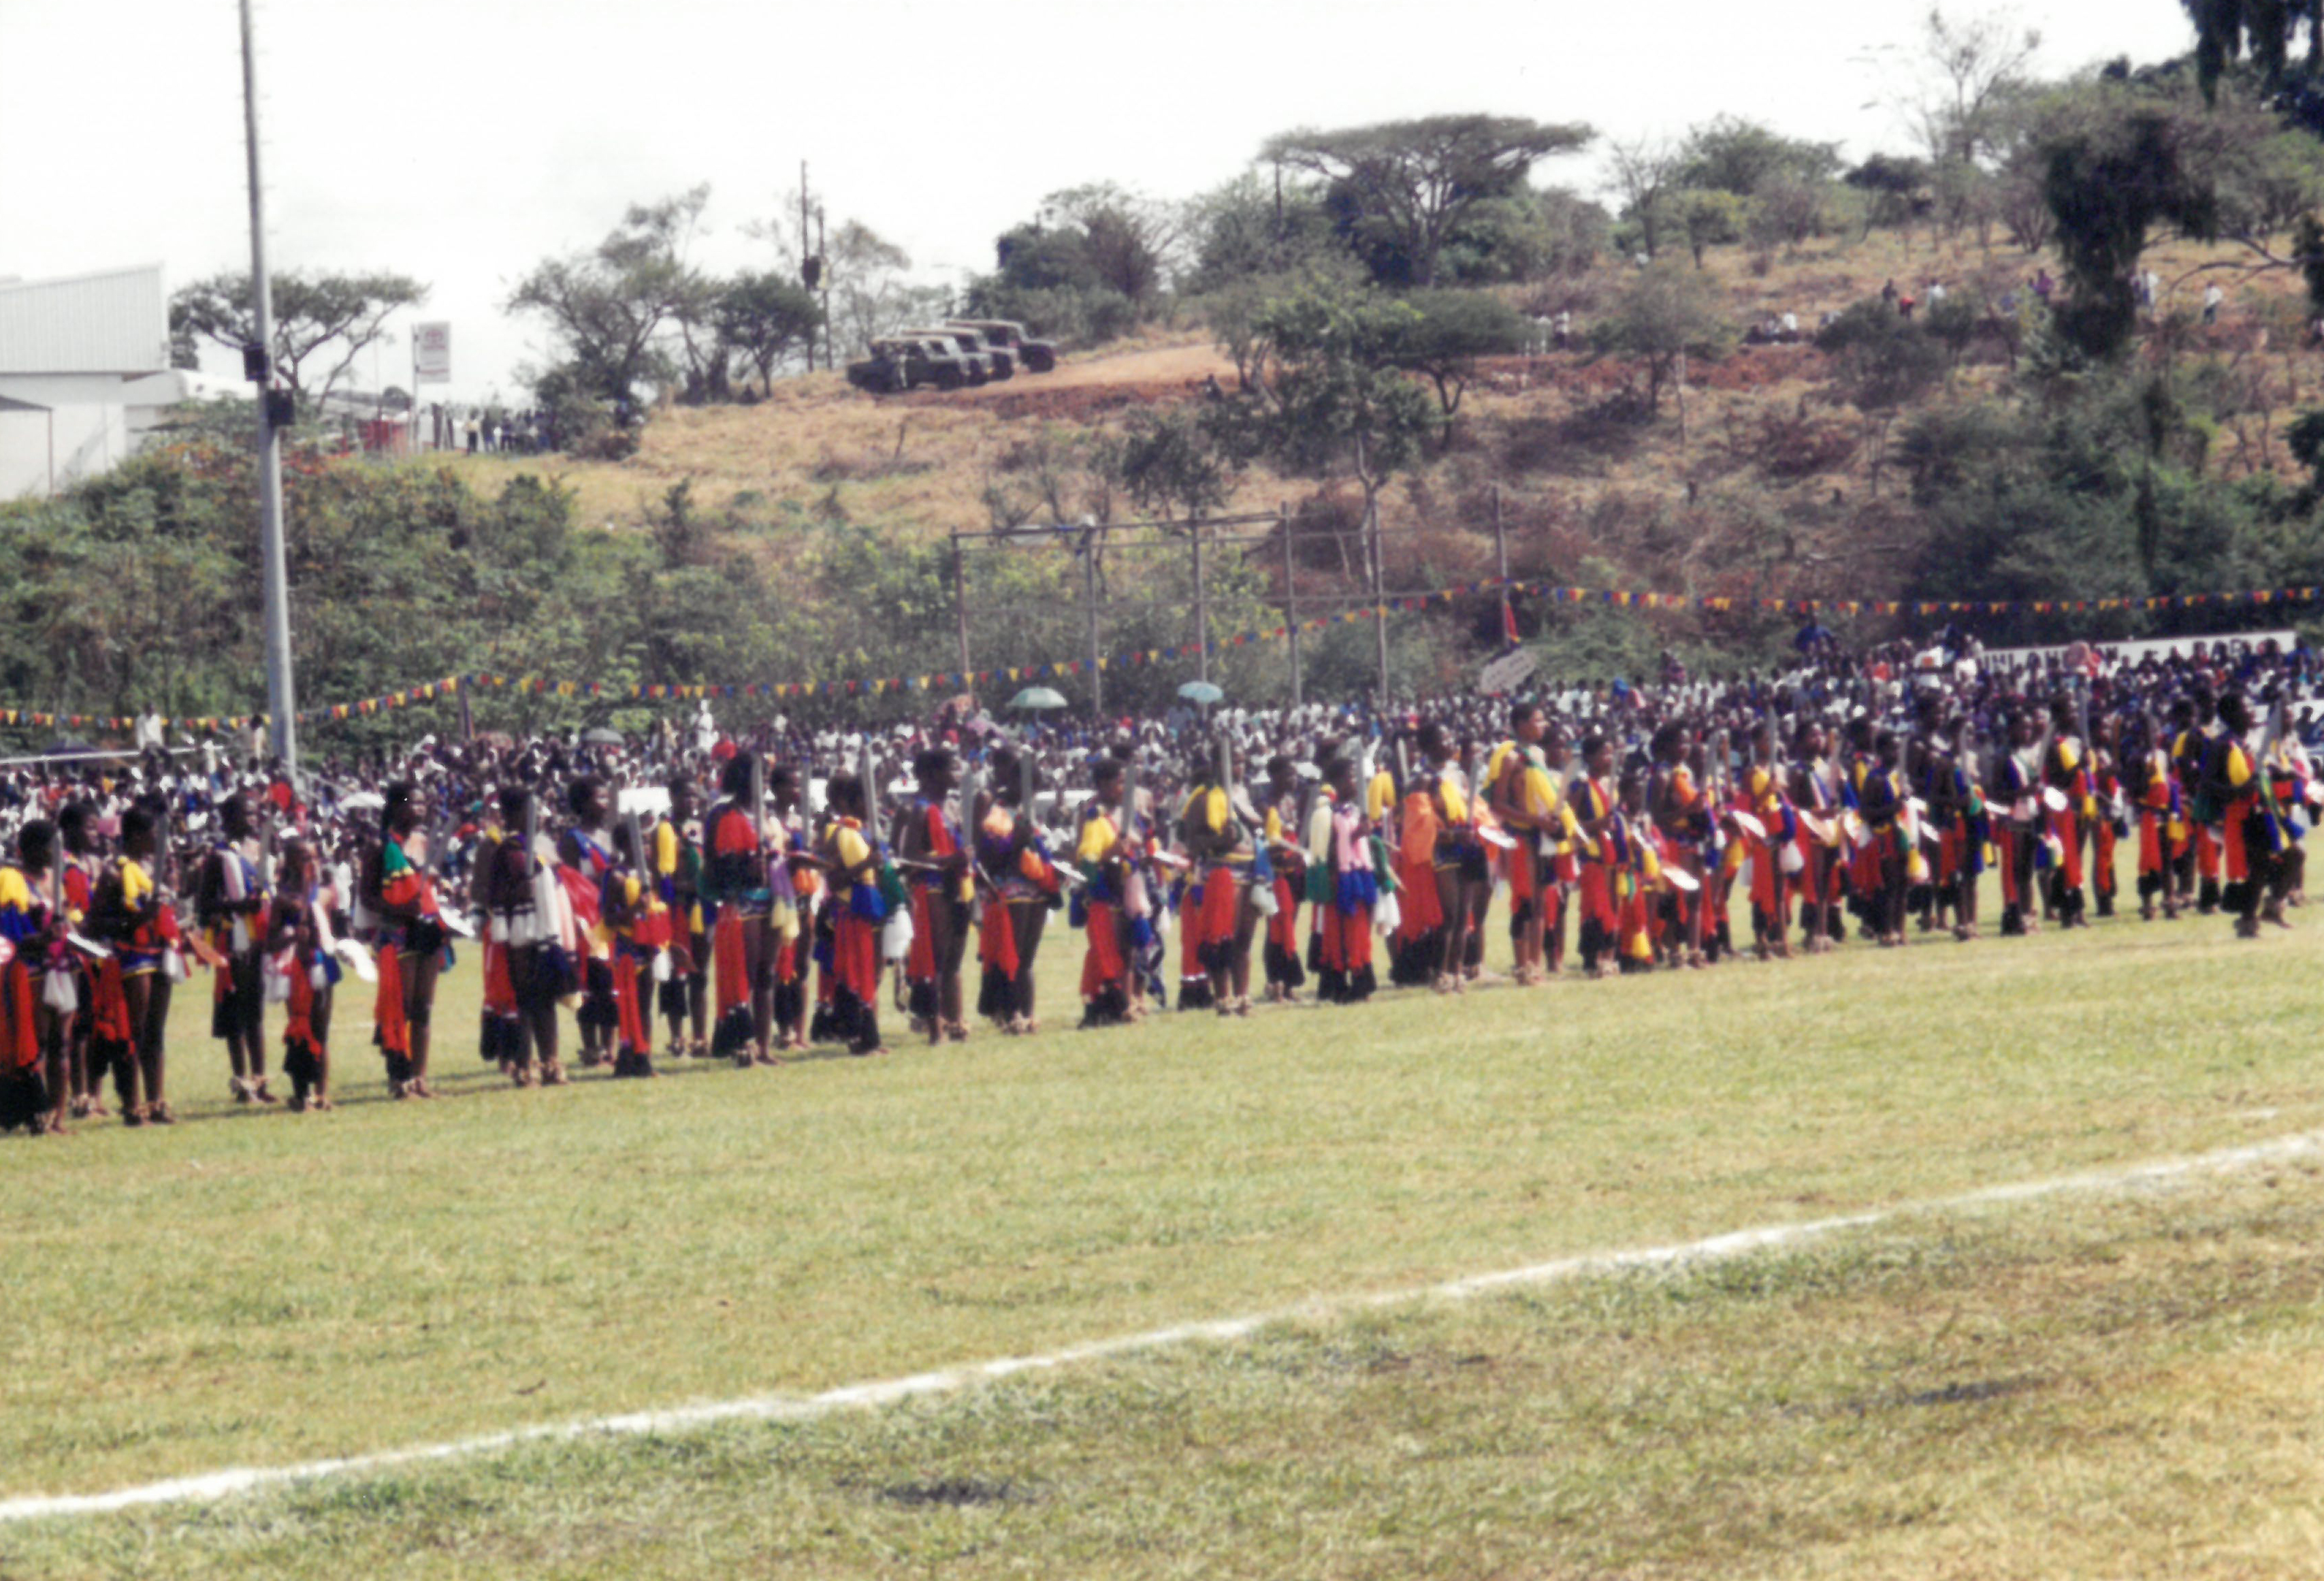 Celebration for 25 years of TWR Swaziland